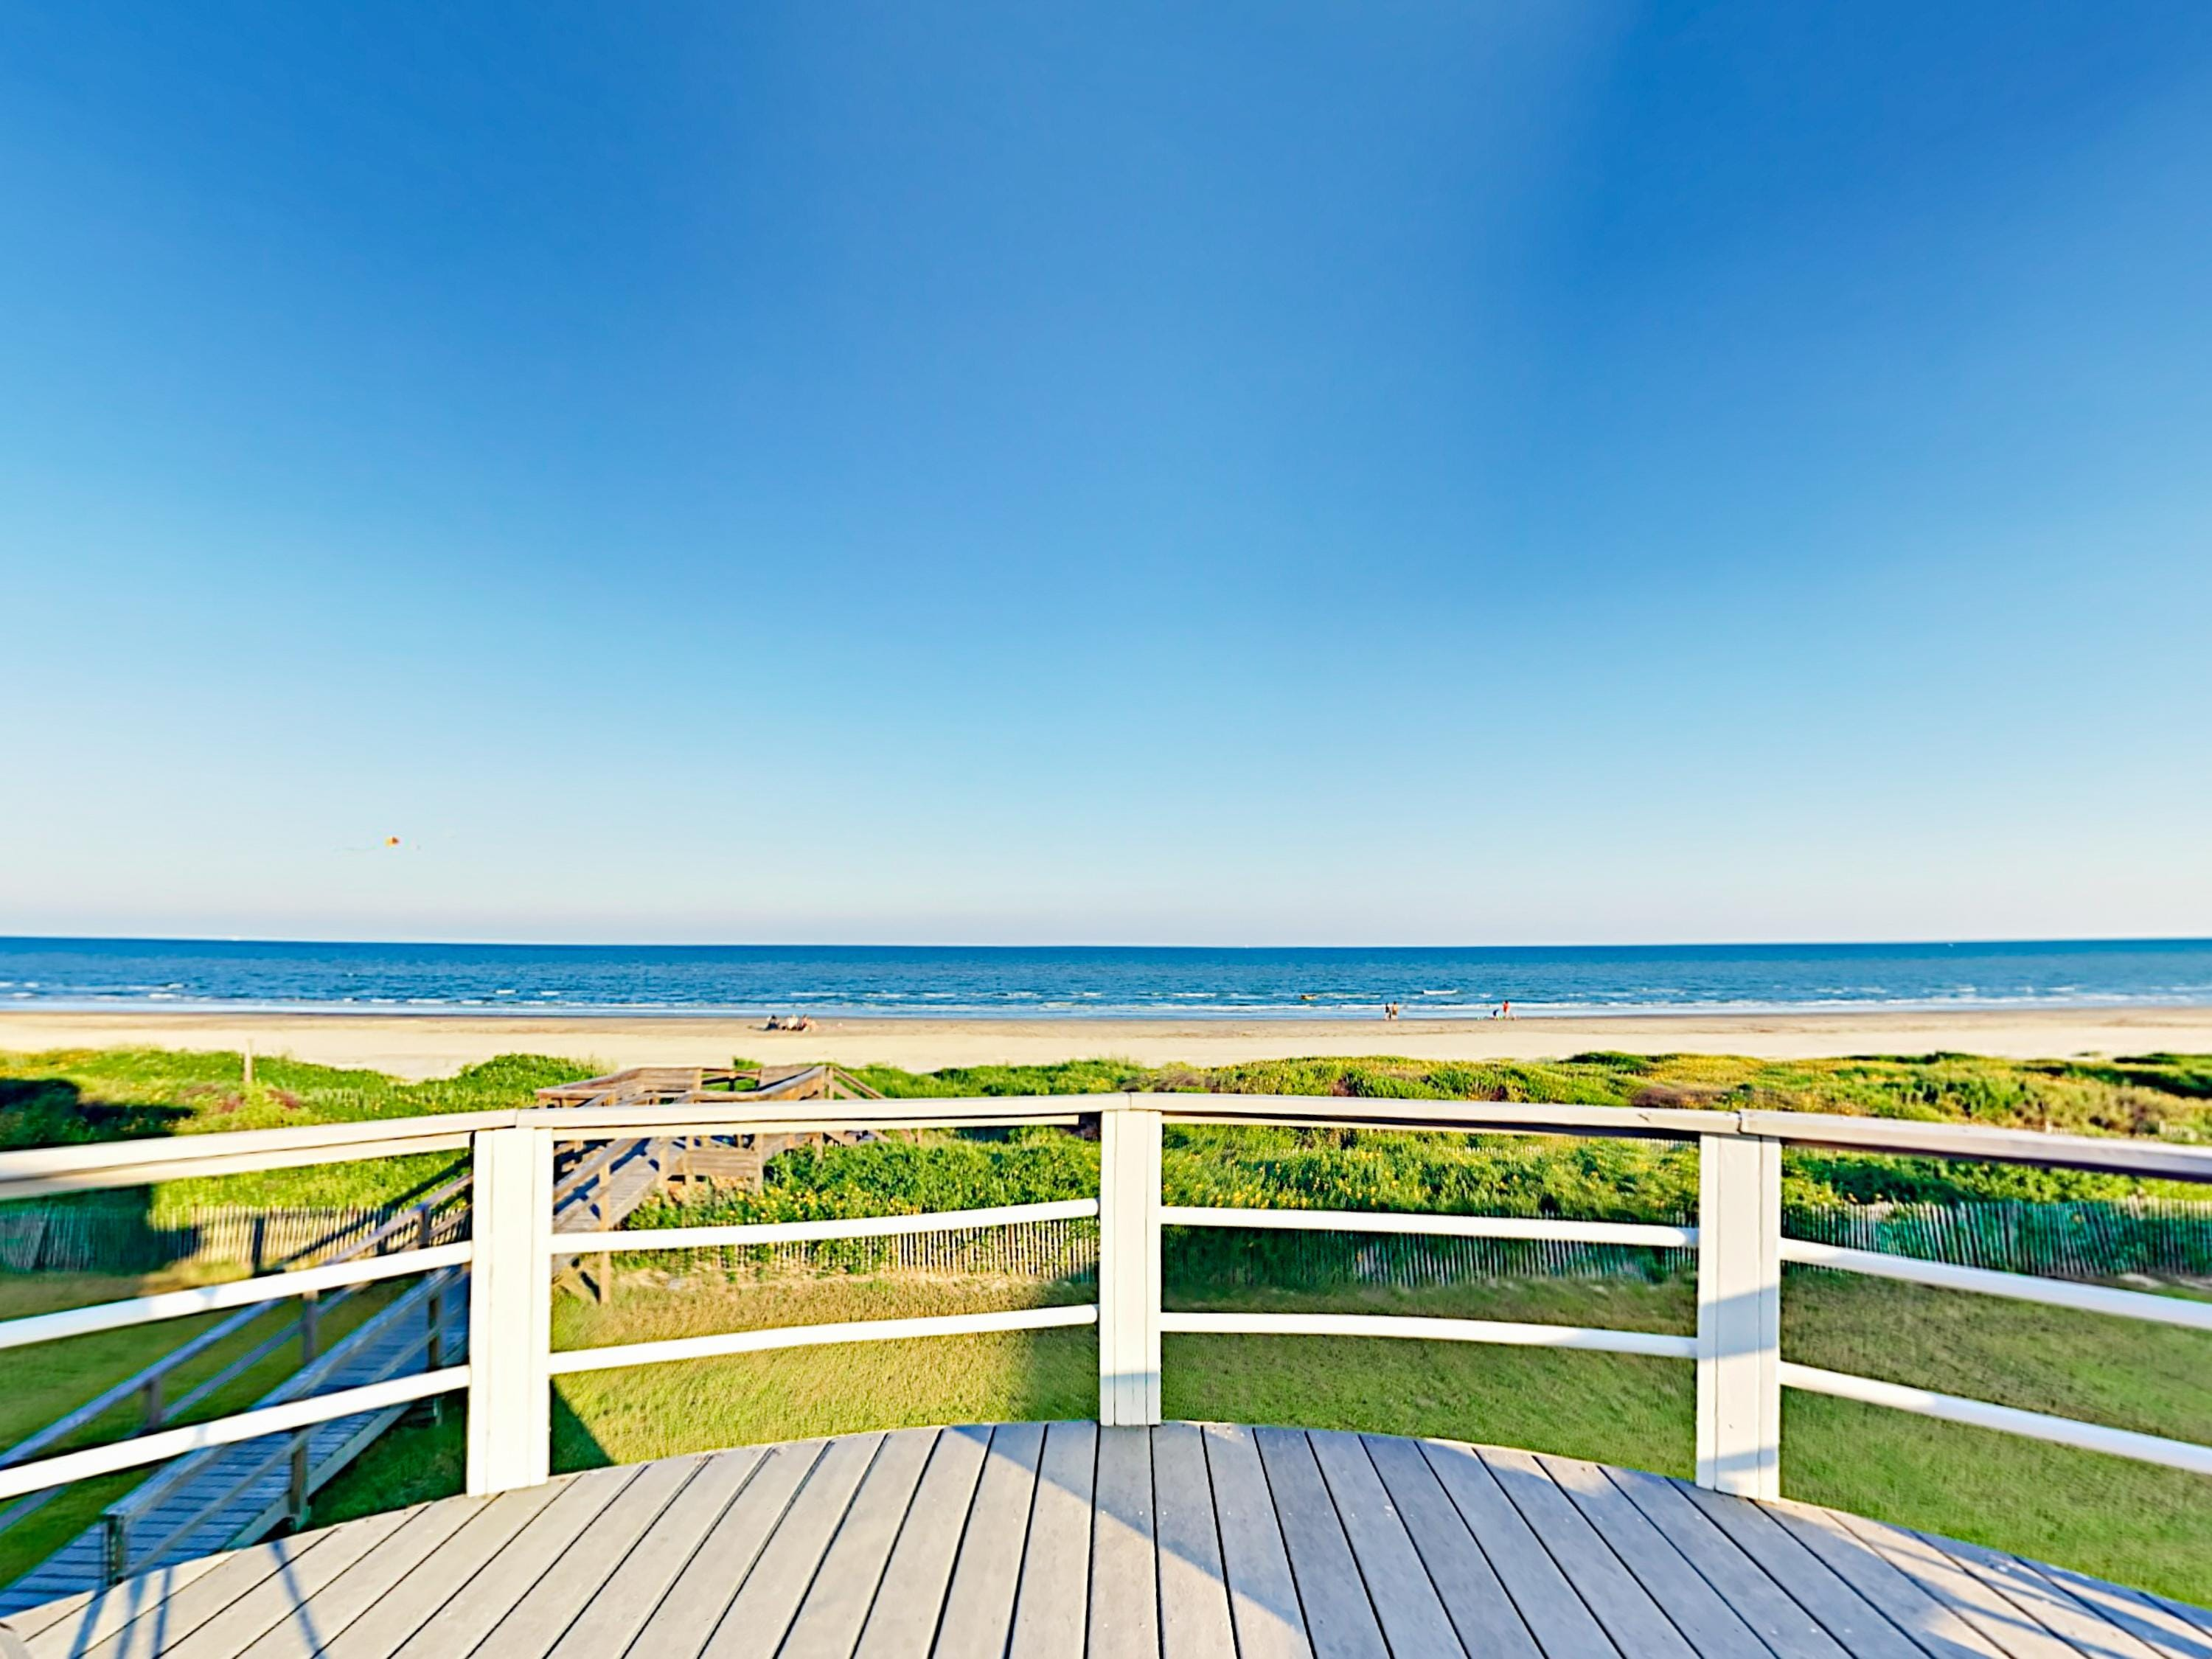 Property Image 2 - Idyllic Beachfront Home Featuring Private Boardwalk